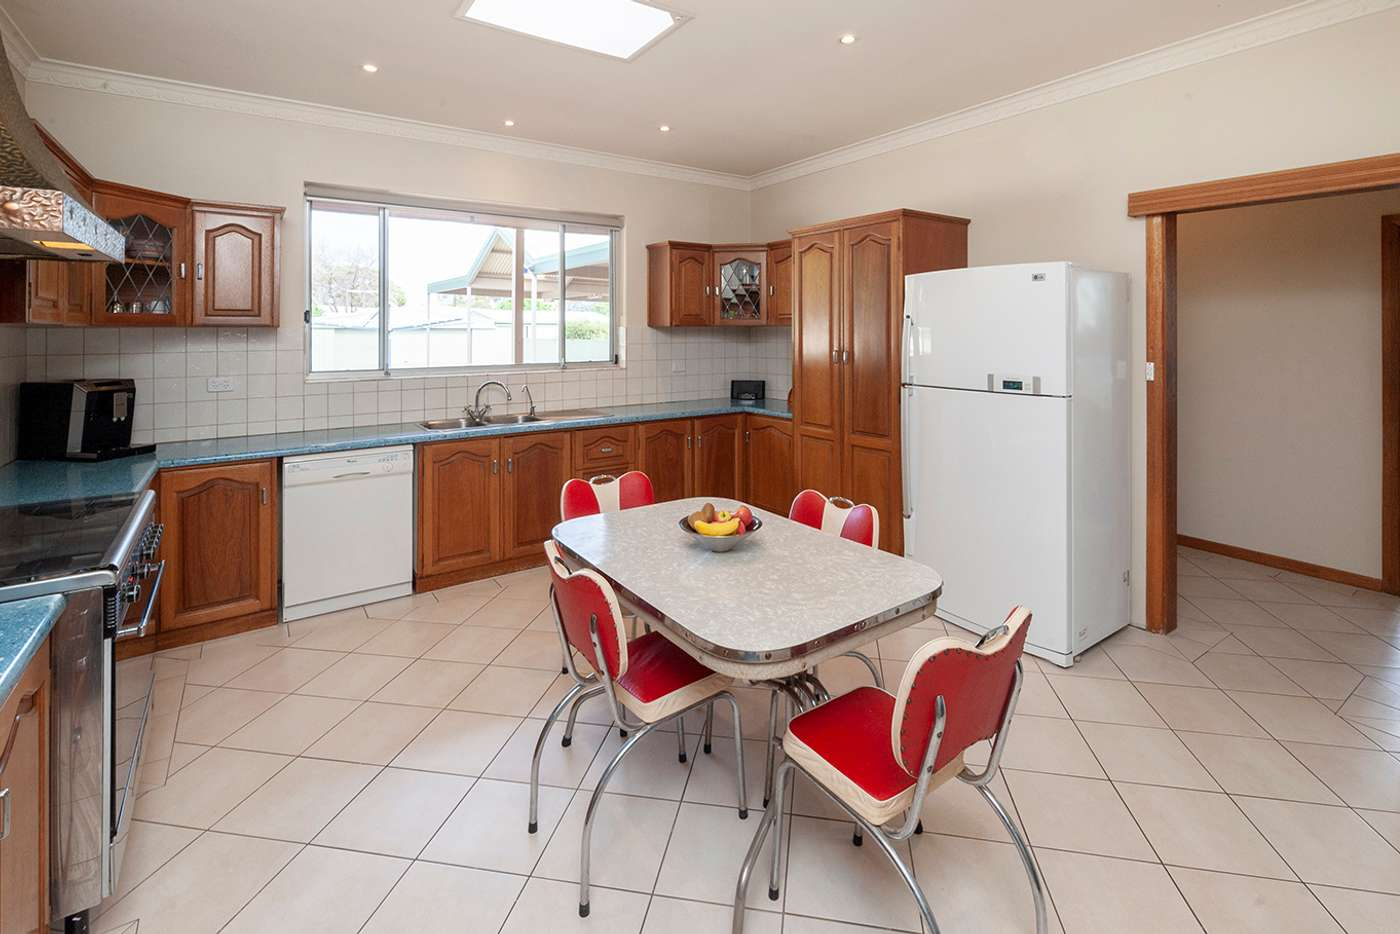 Fifth view of Homely house listing, 7 MORRIS STREET, Evandale SA 5069